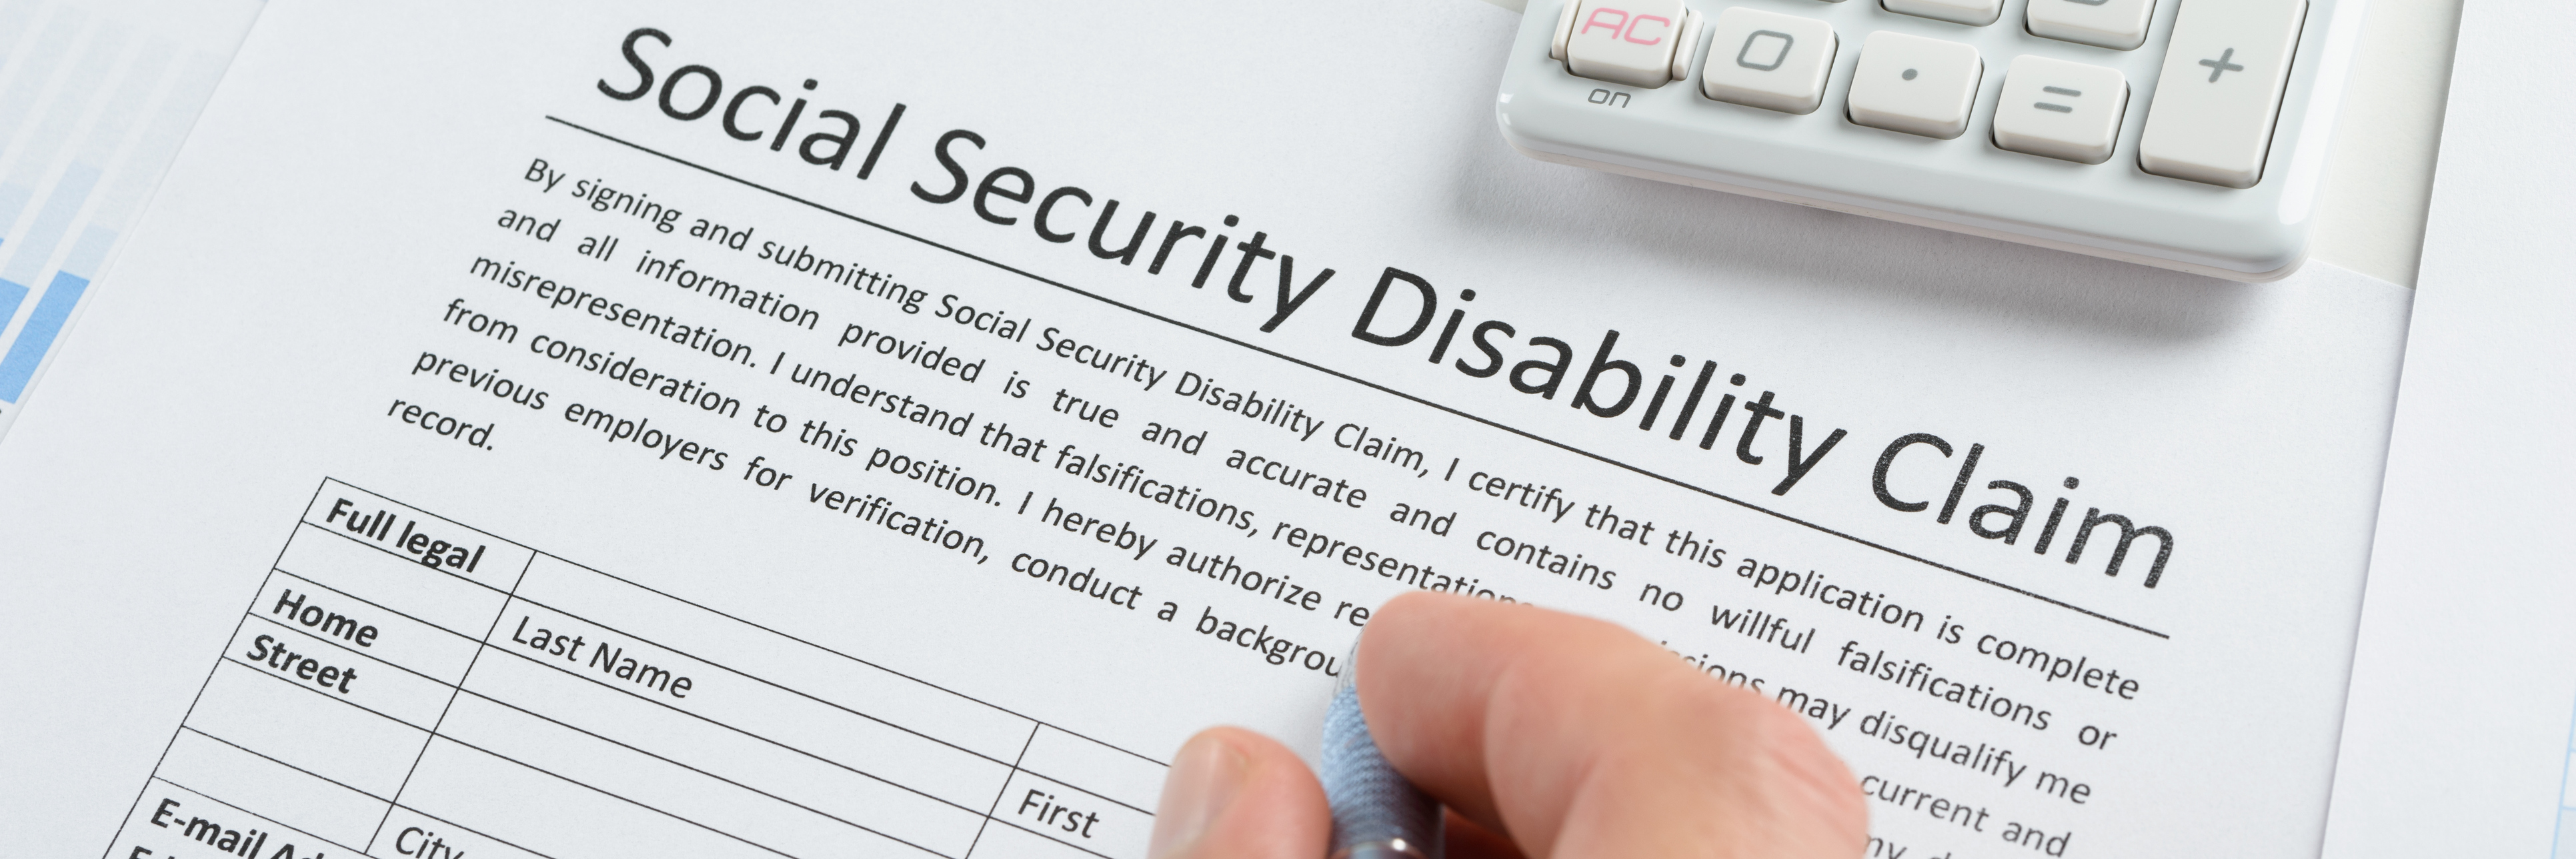 Person filling out disability form.